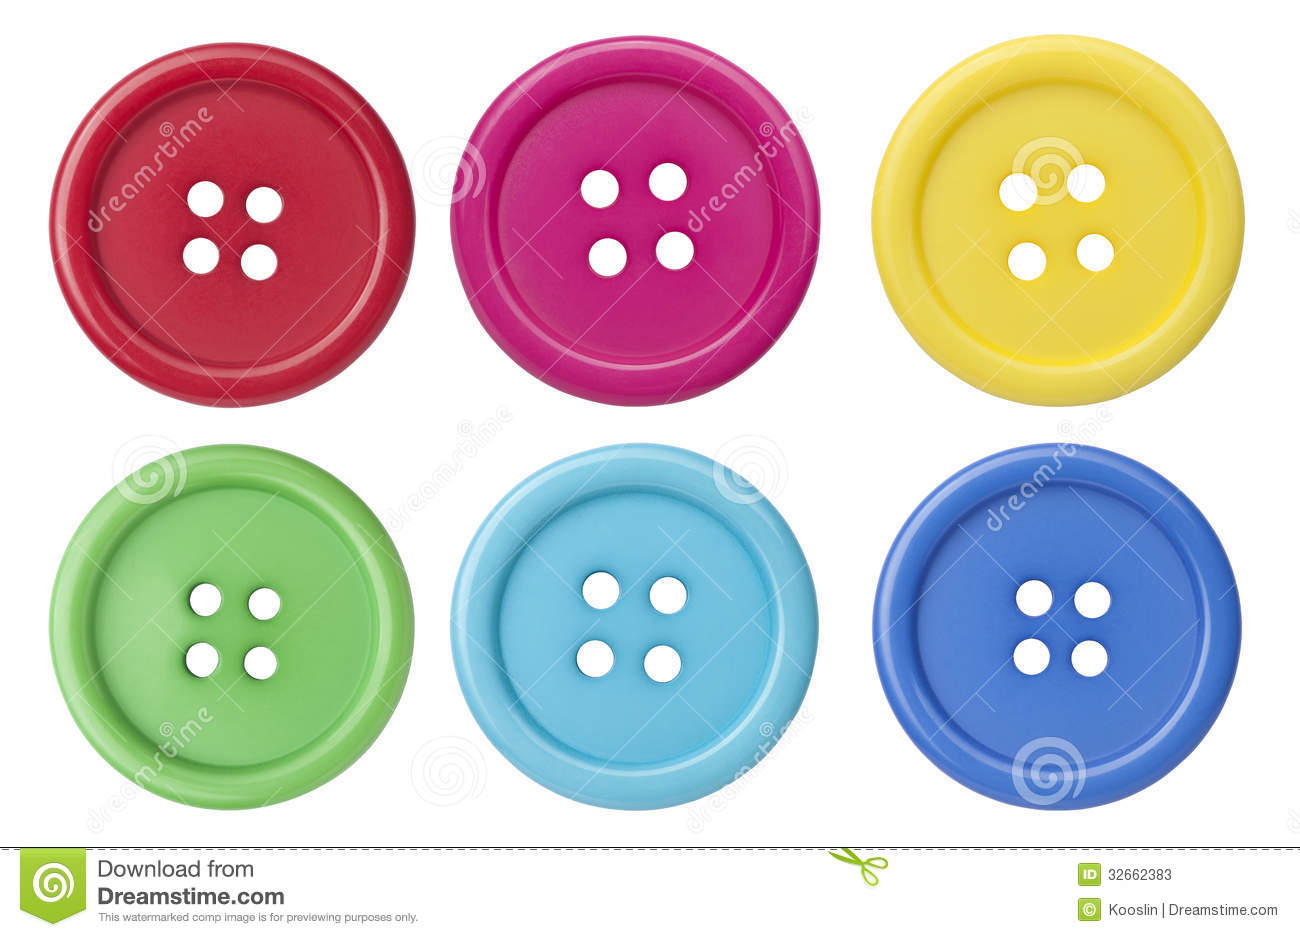 Sewing Buttons Stock Photos - Image: 32662383